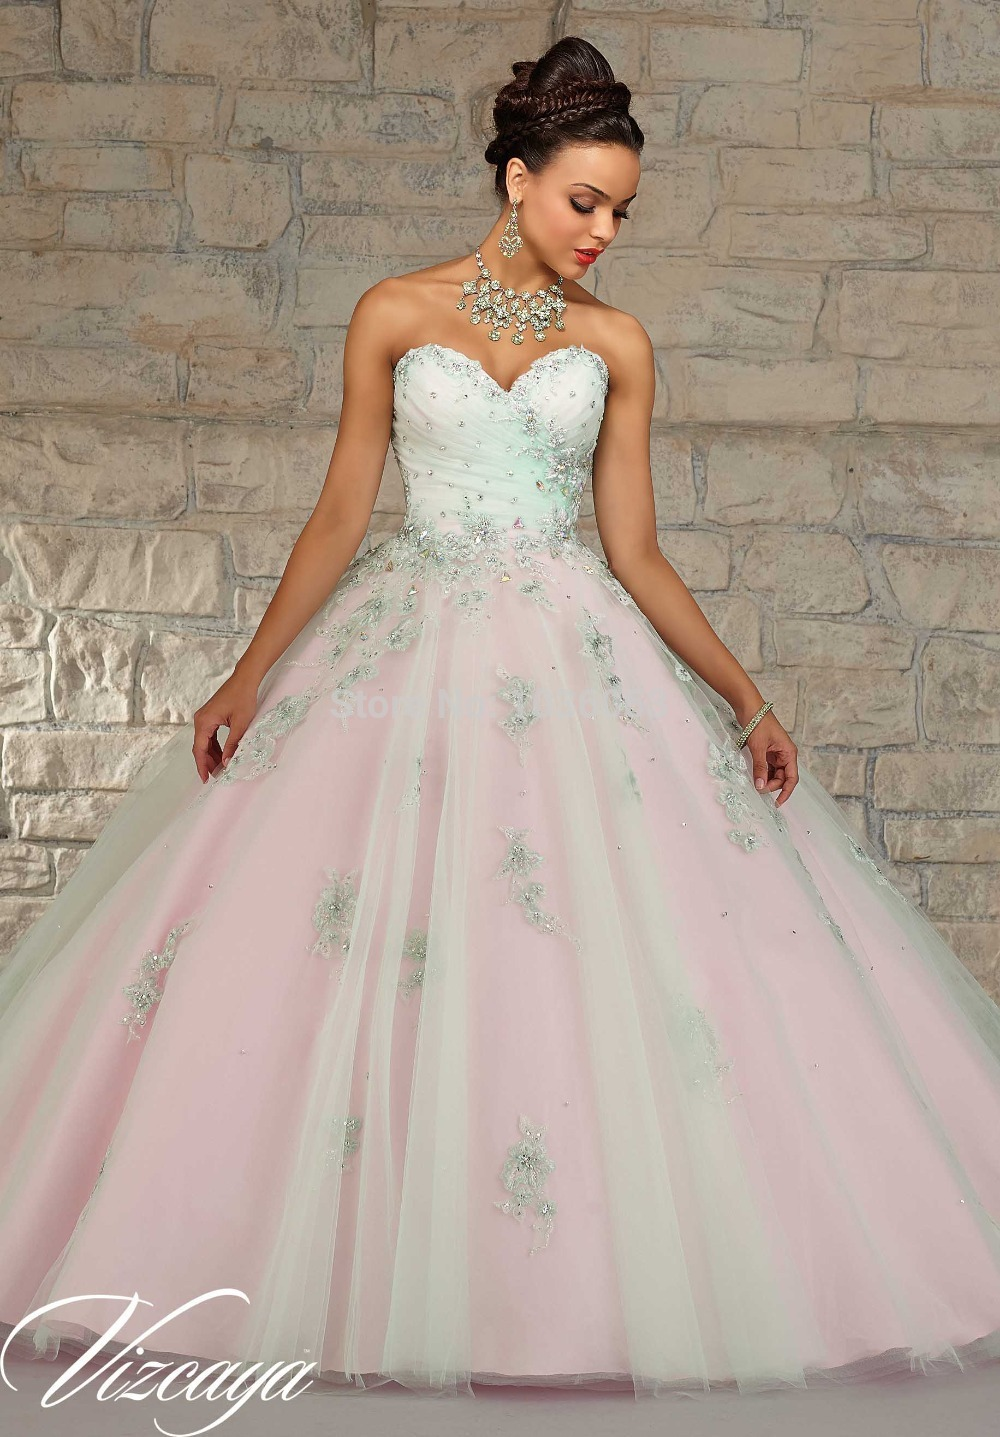 New Arrival Appliques Long Pink Sweetheart Tulle Ball Gown Prom Quinceanera Girls Robe De Soiree Mother Of The Bride Dresses